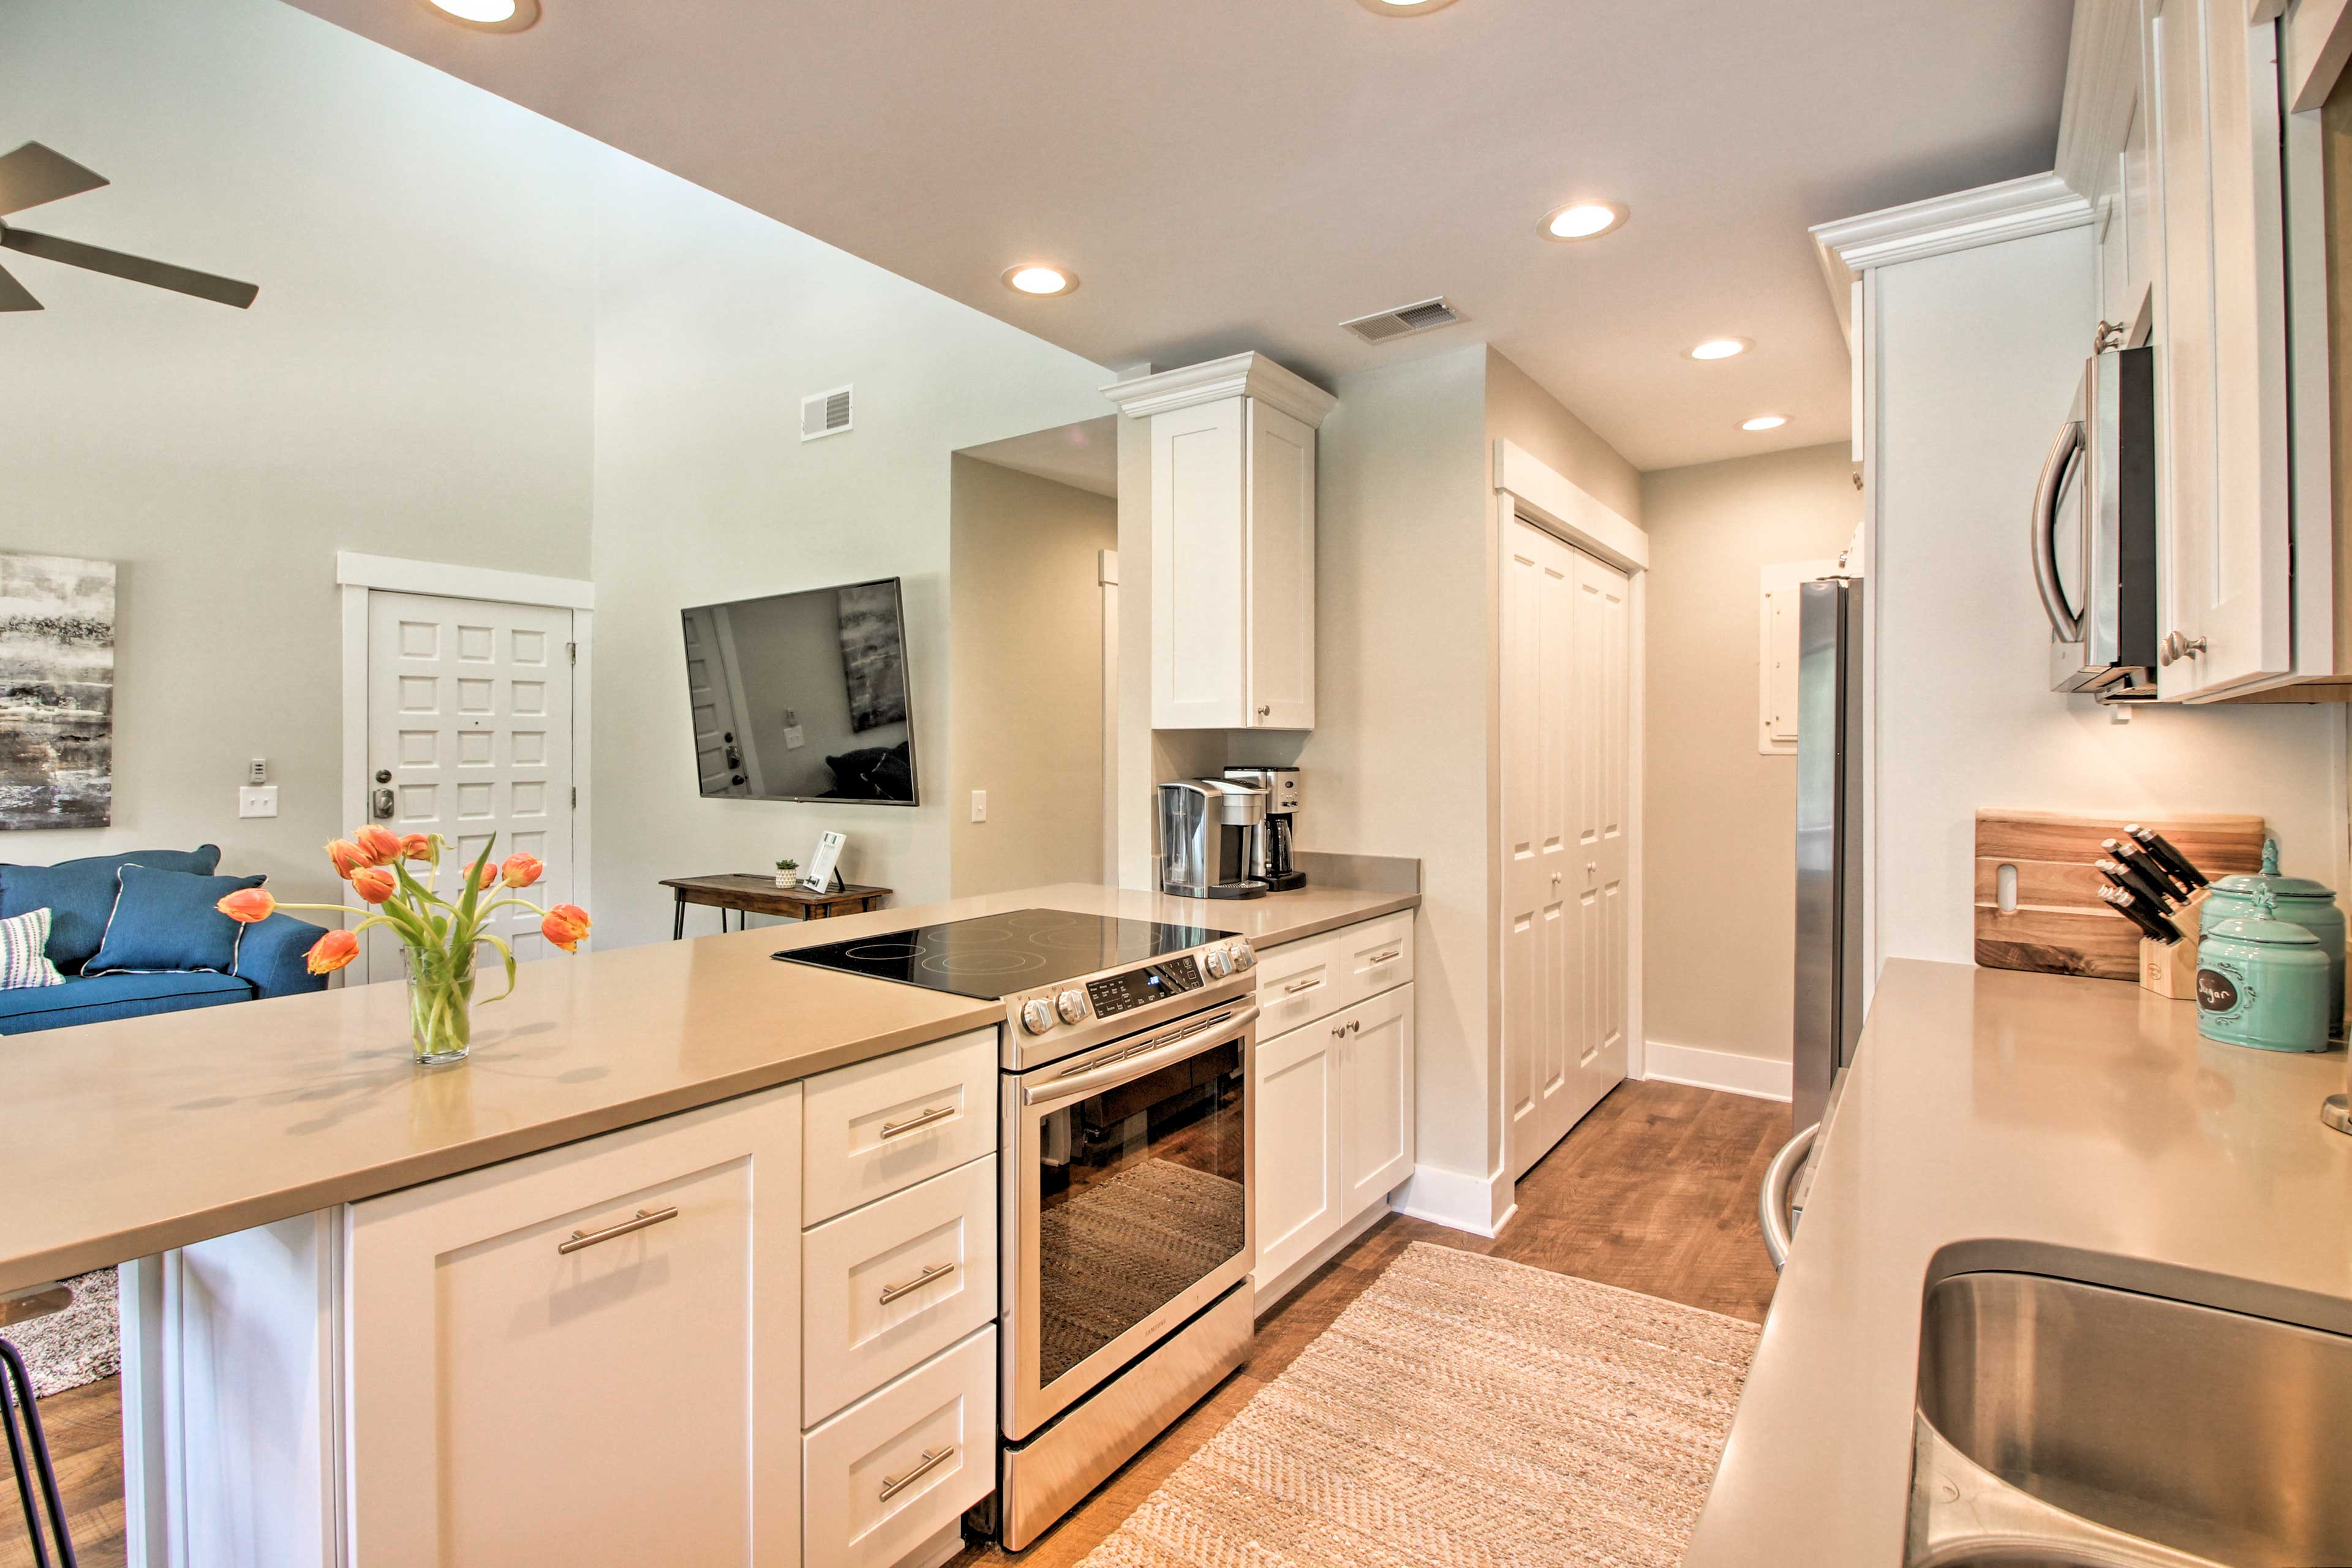 The kitchen is fully equipped to handle all of your cooking needs.